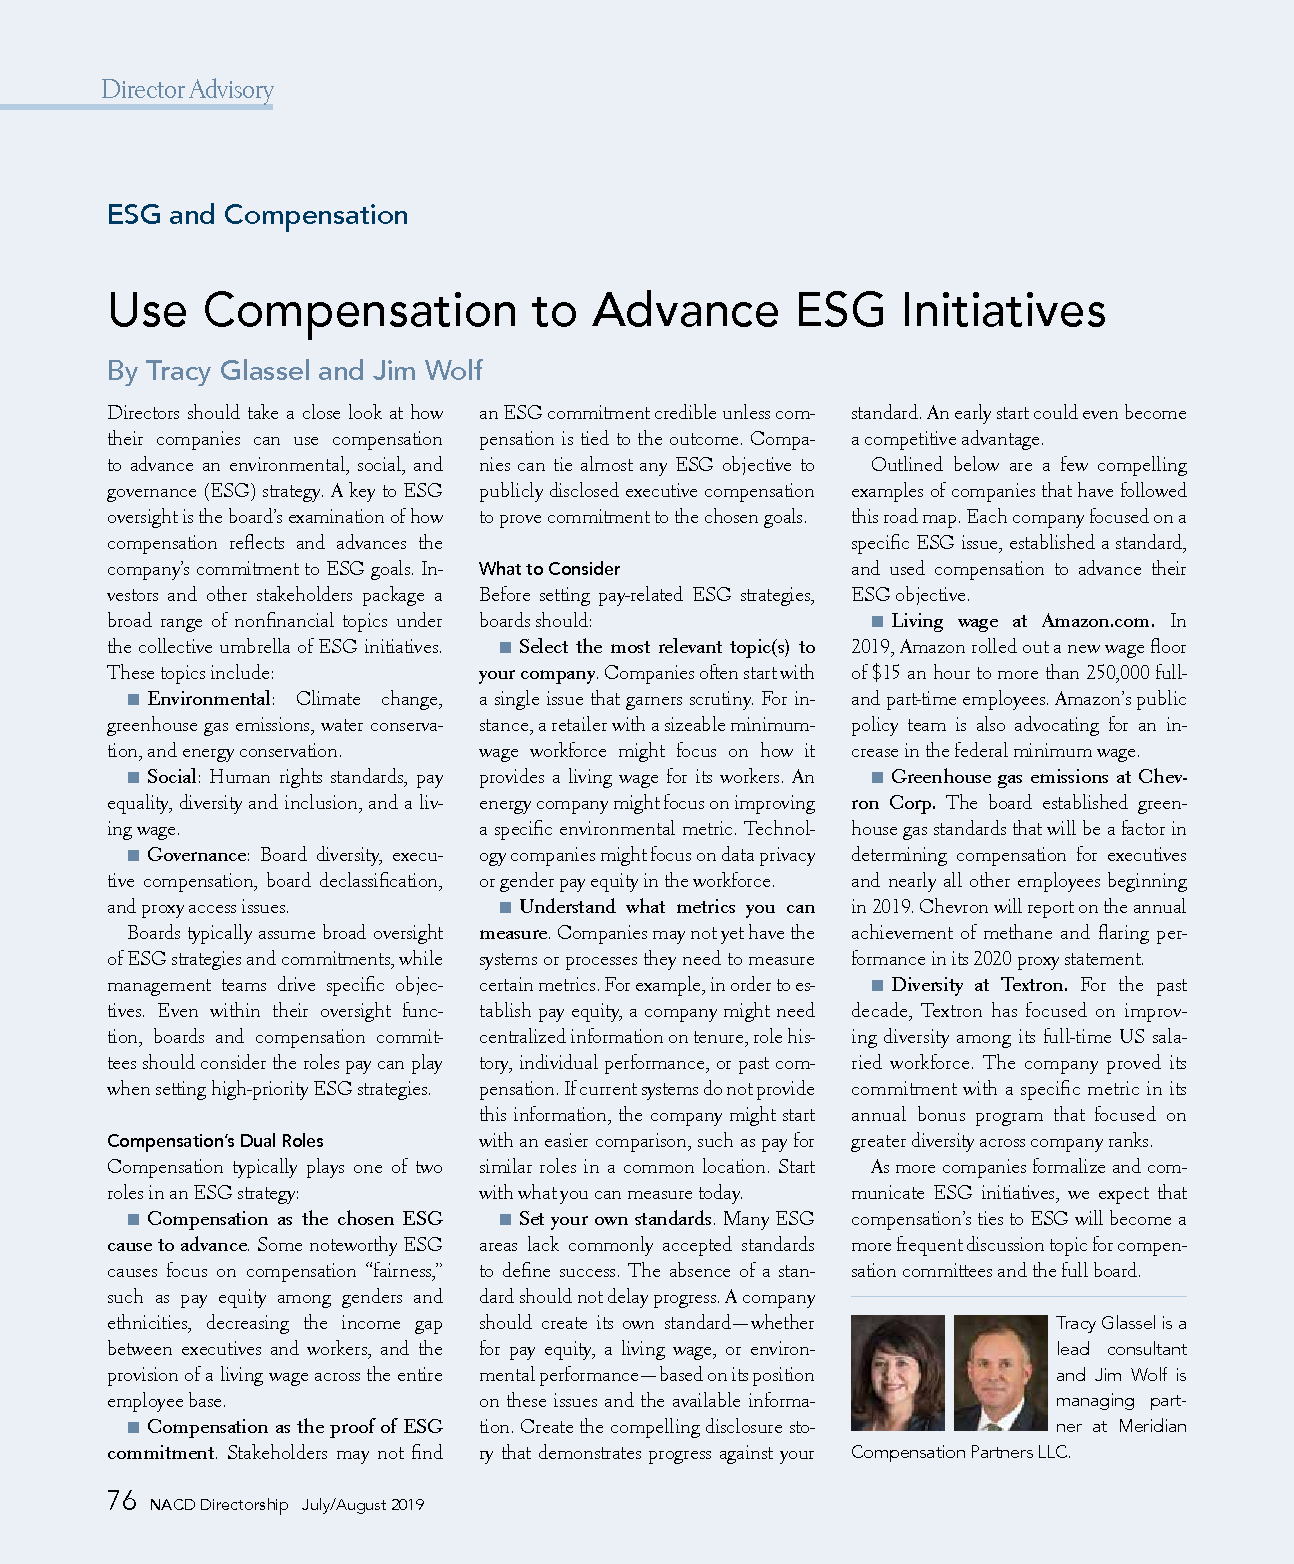 Use Compensation to Advance ESG Initiatives (PDF)